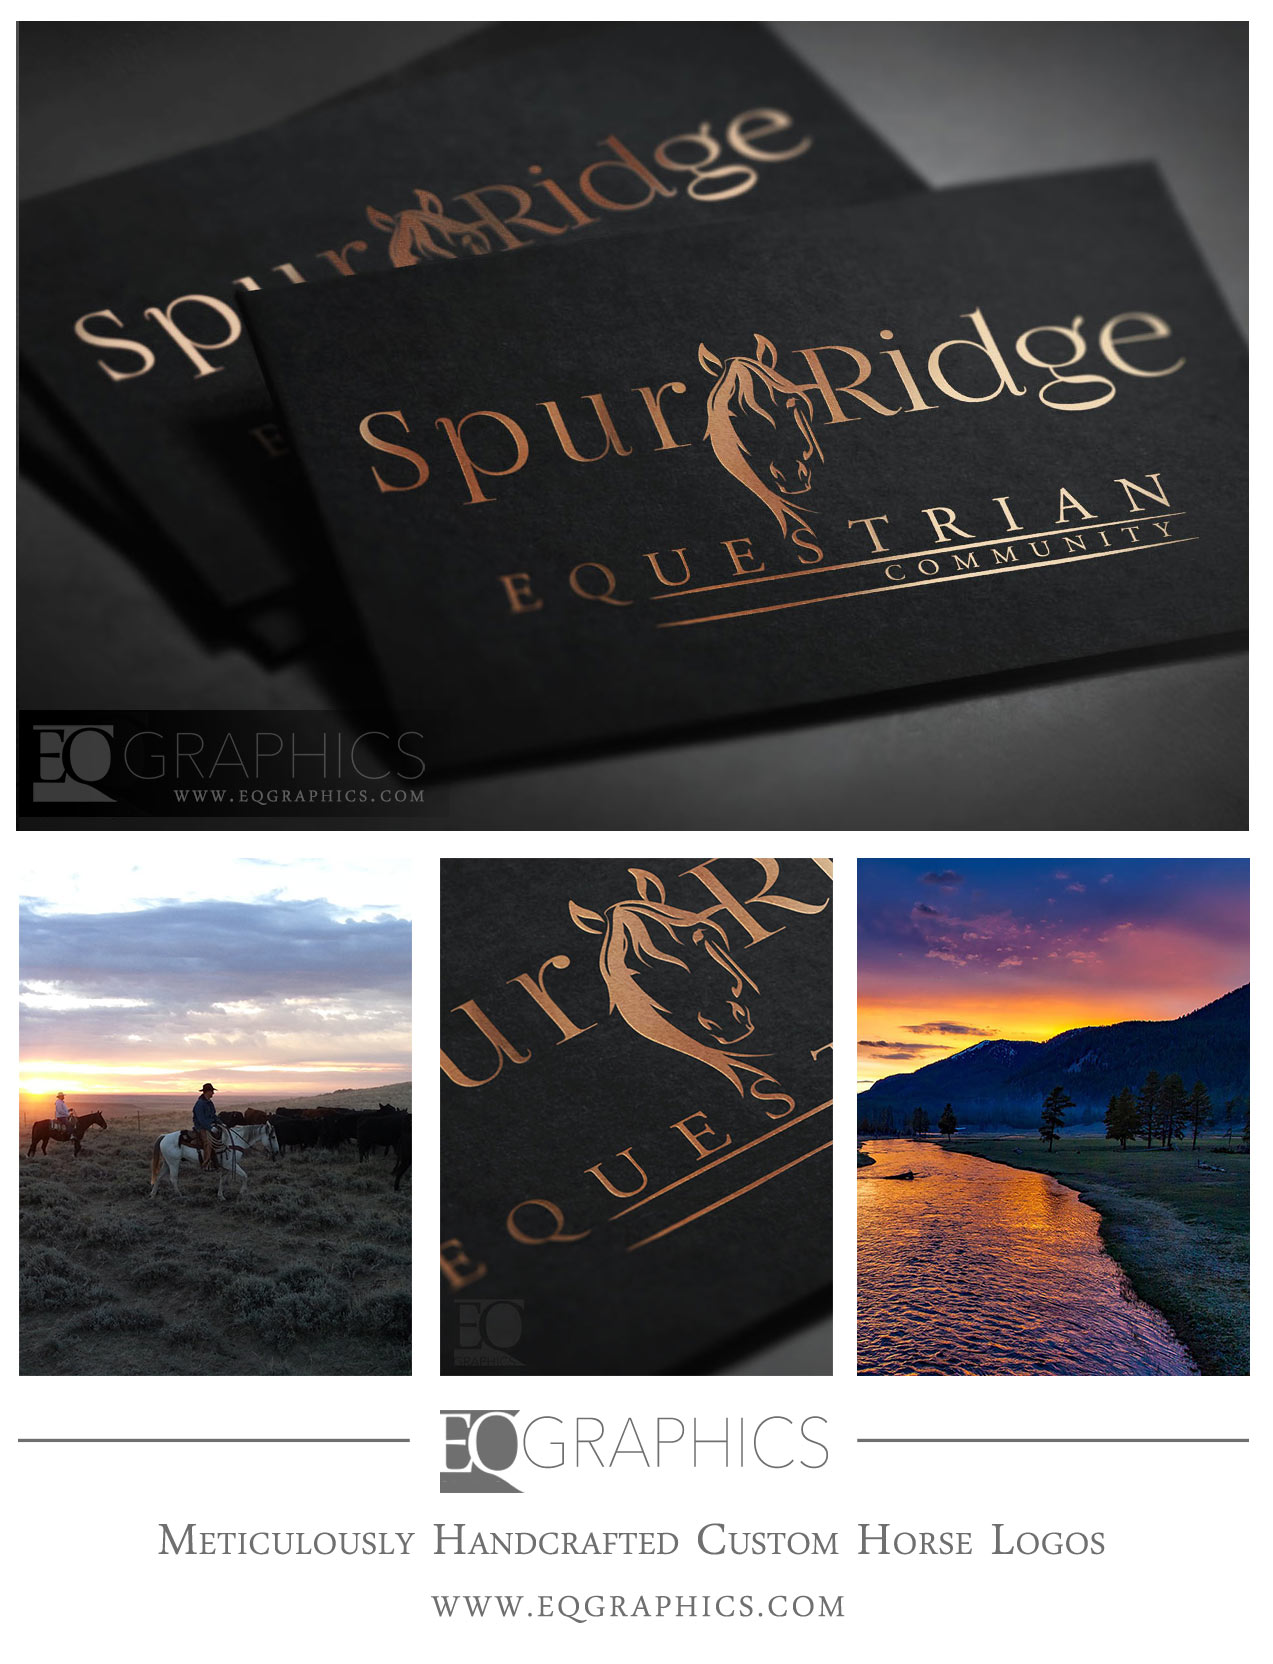 Spur Ridge Ranch Custom  Horse Logo by EQ Graphics Equine Designer